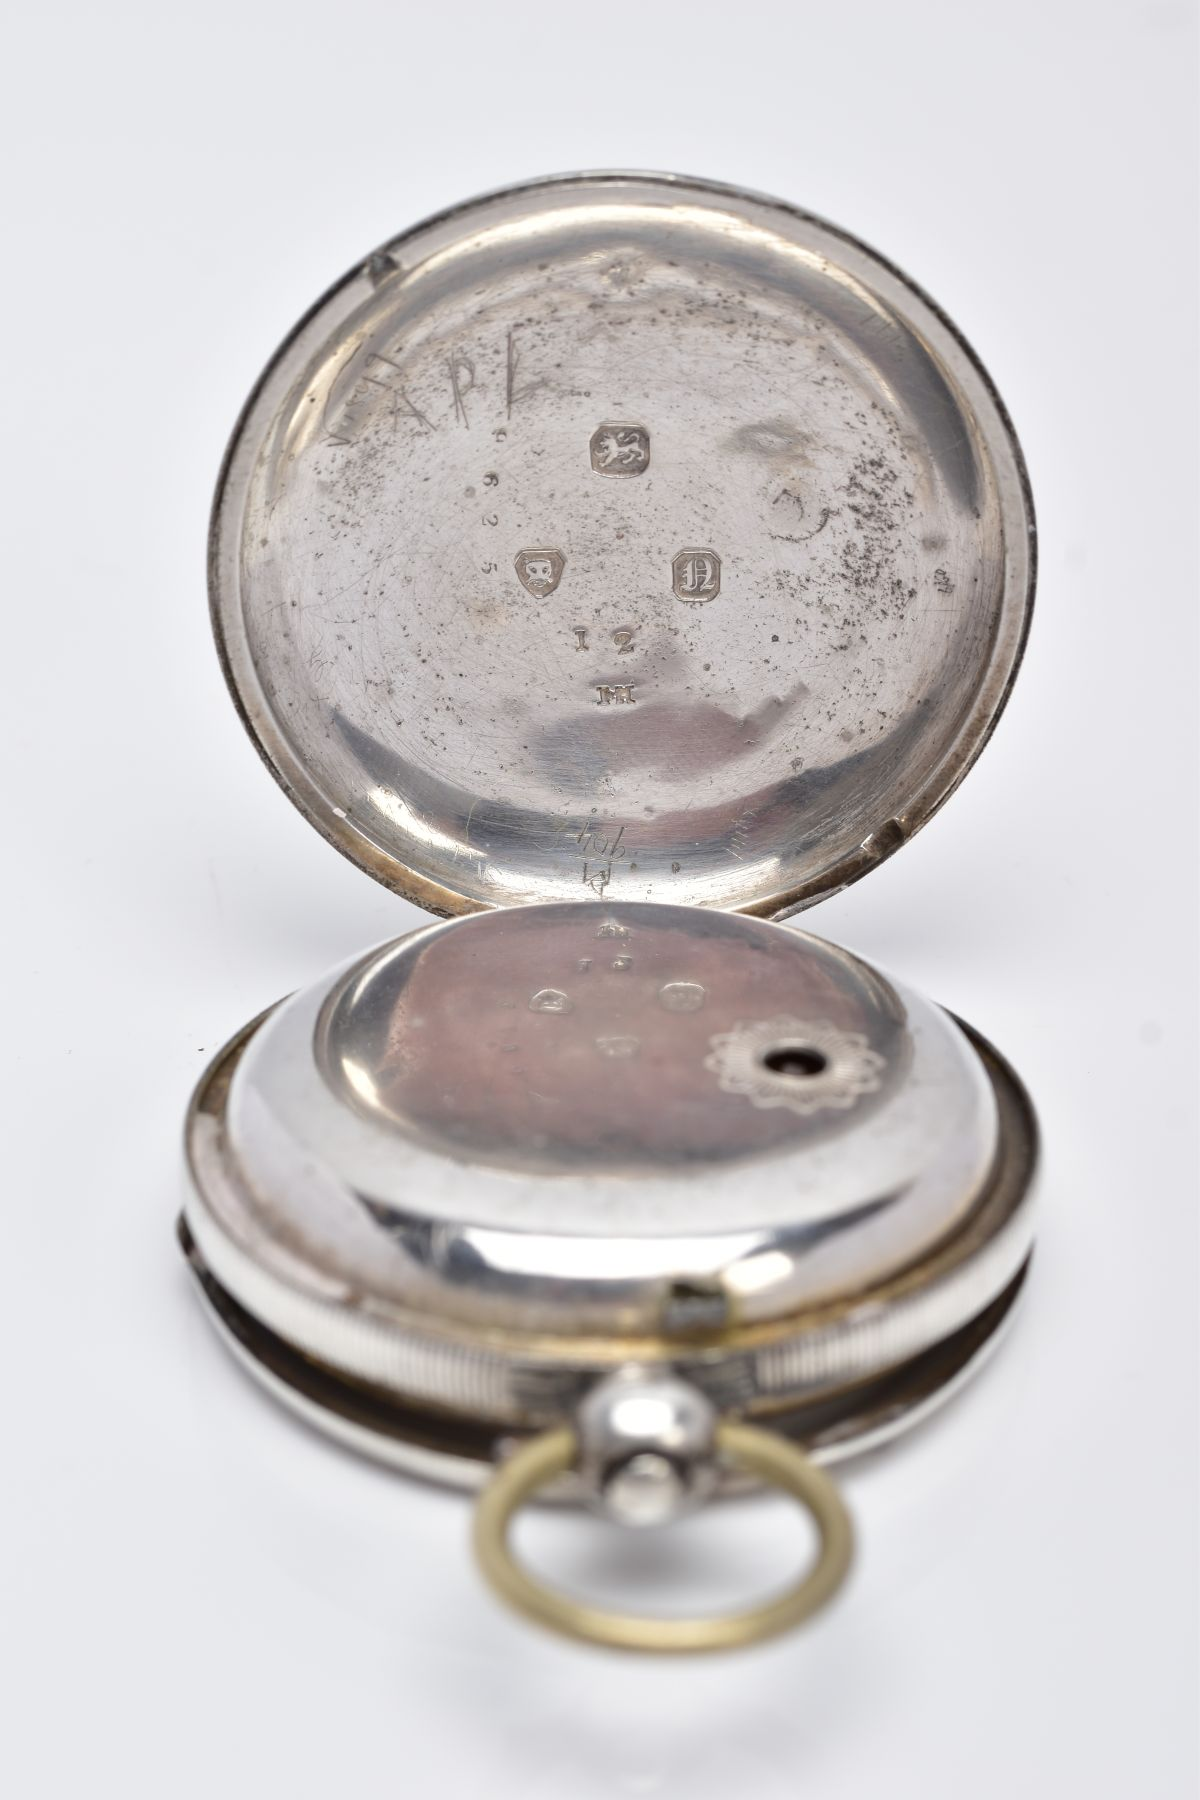 A SILVER OPEN FACED POCKET WATCH, AF, cream dial, Roman numerals, seconds subsidiary dial at the six - Image 3 of 5